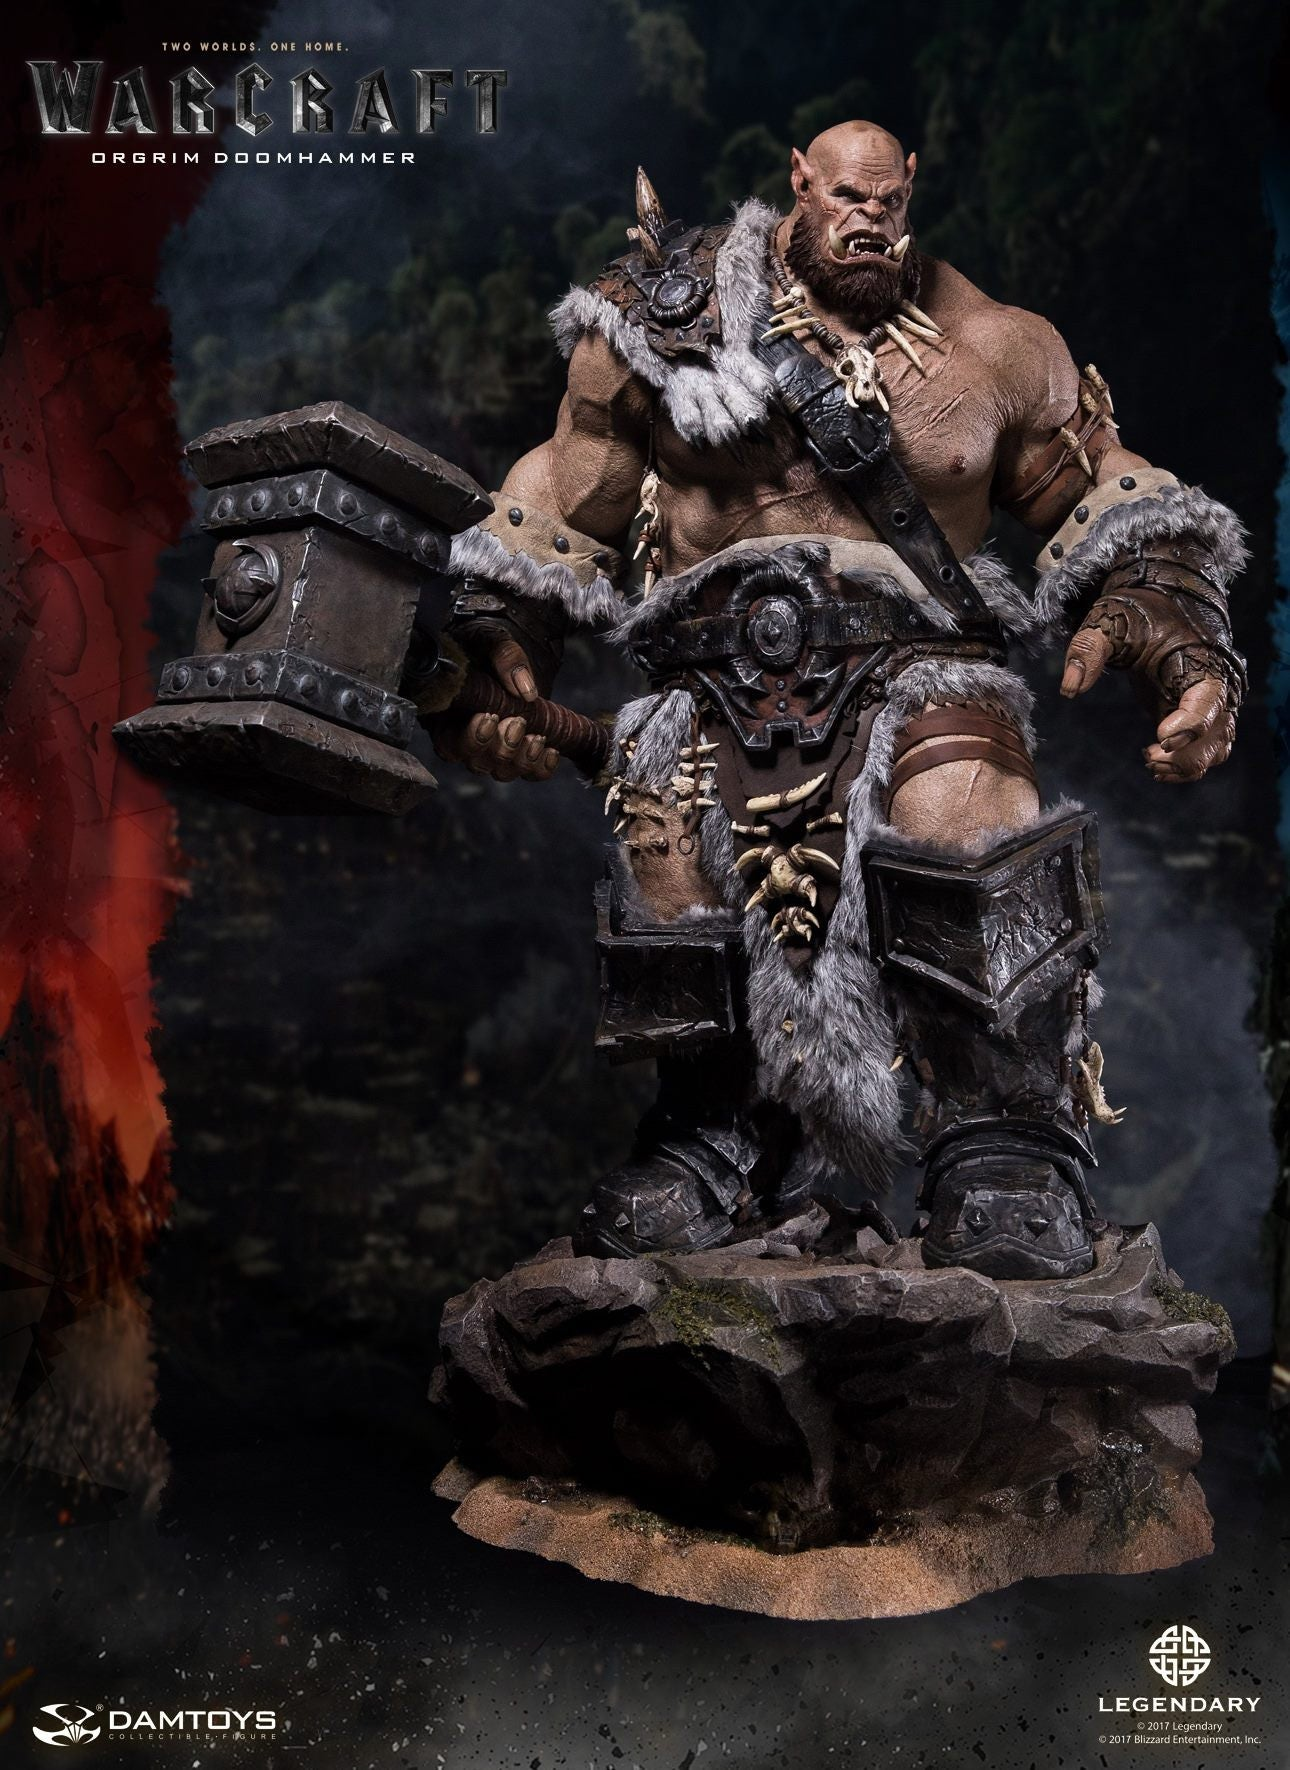 Dam Toys - DMLW02 - Epic Series - Warcraft - Orgrim Doomhammer Premium Statue - Marvelous Toys - 17